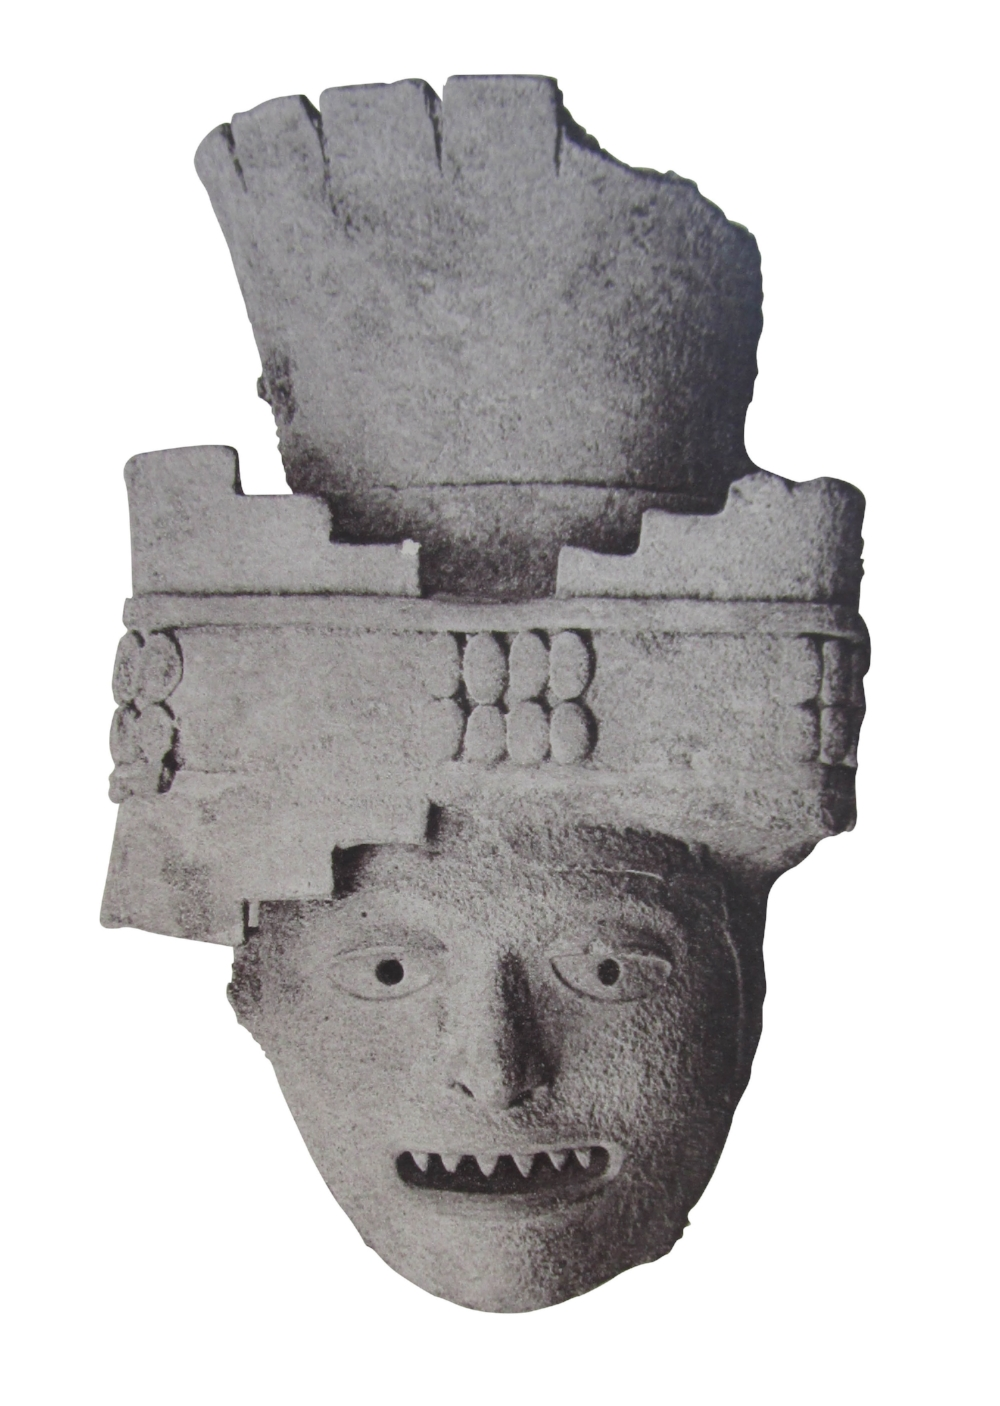 The head of a broken statue that Augustus Le Plongeon found buried in front of the temple at Punta Sur in 1876. It was from statues like this one that Isla Mujeres took her name.